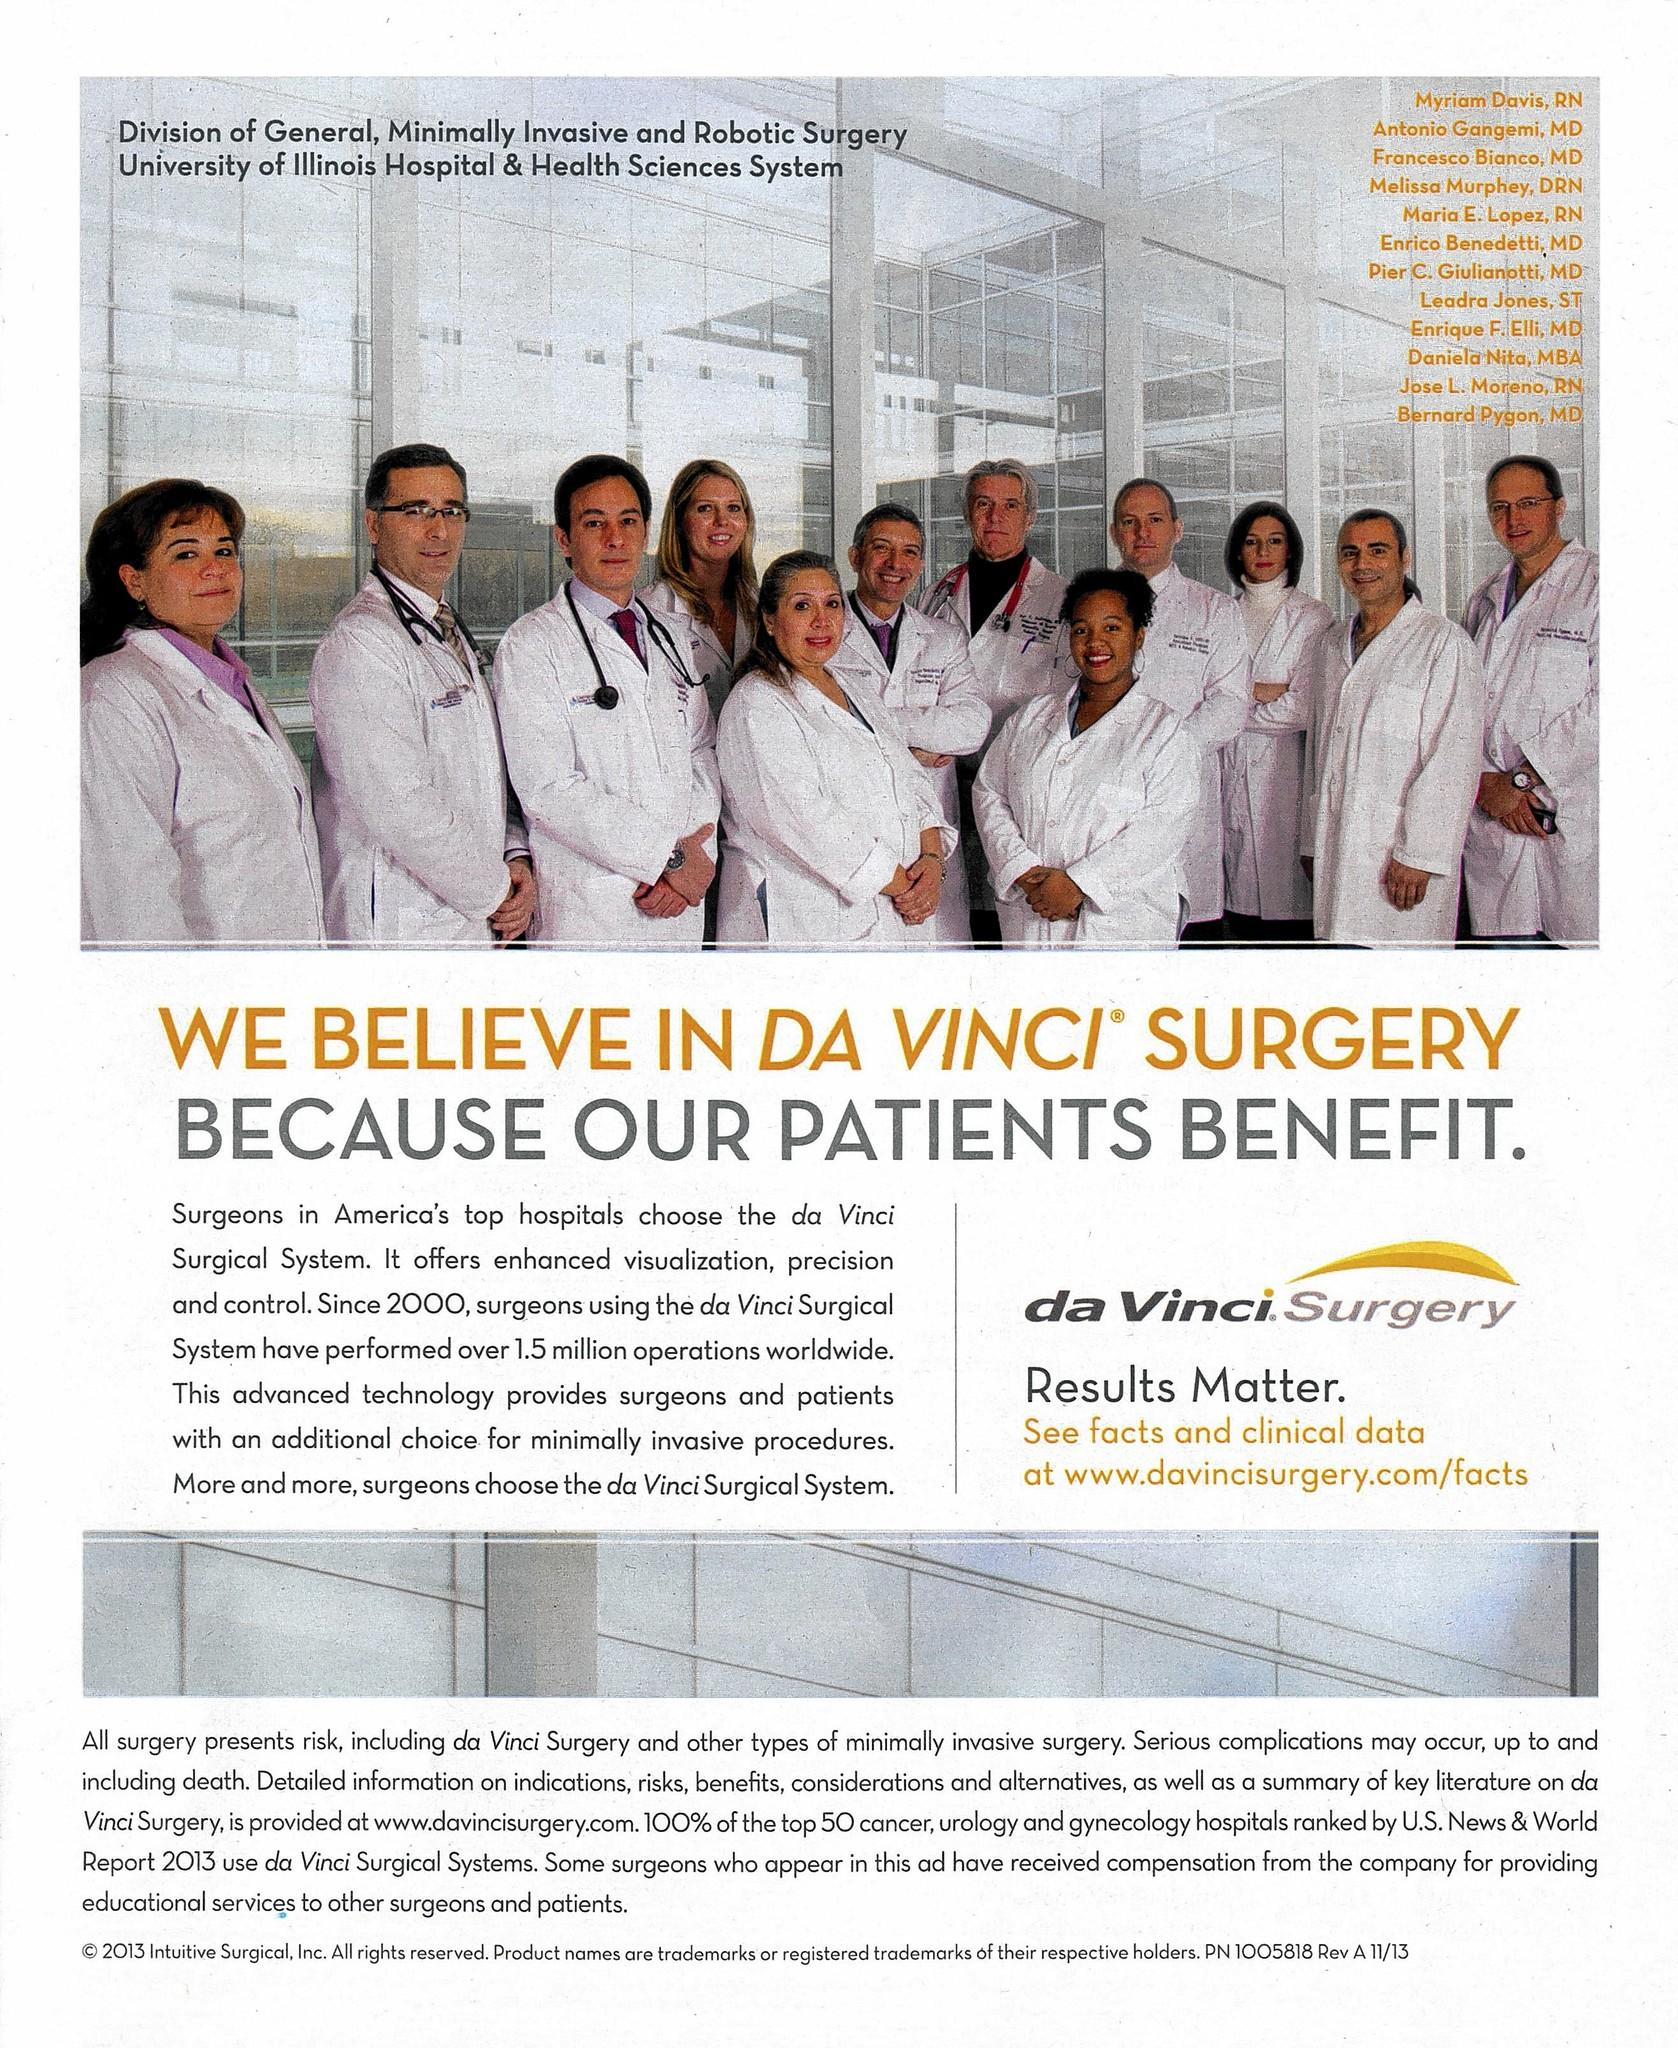 An advertisement for the da Vinci robotic surgery system features University of Illinois hospital employees.